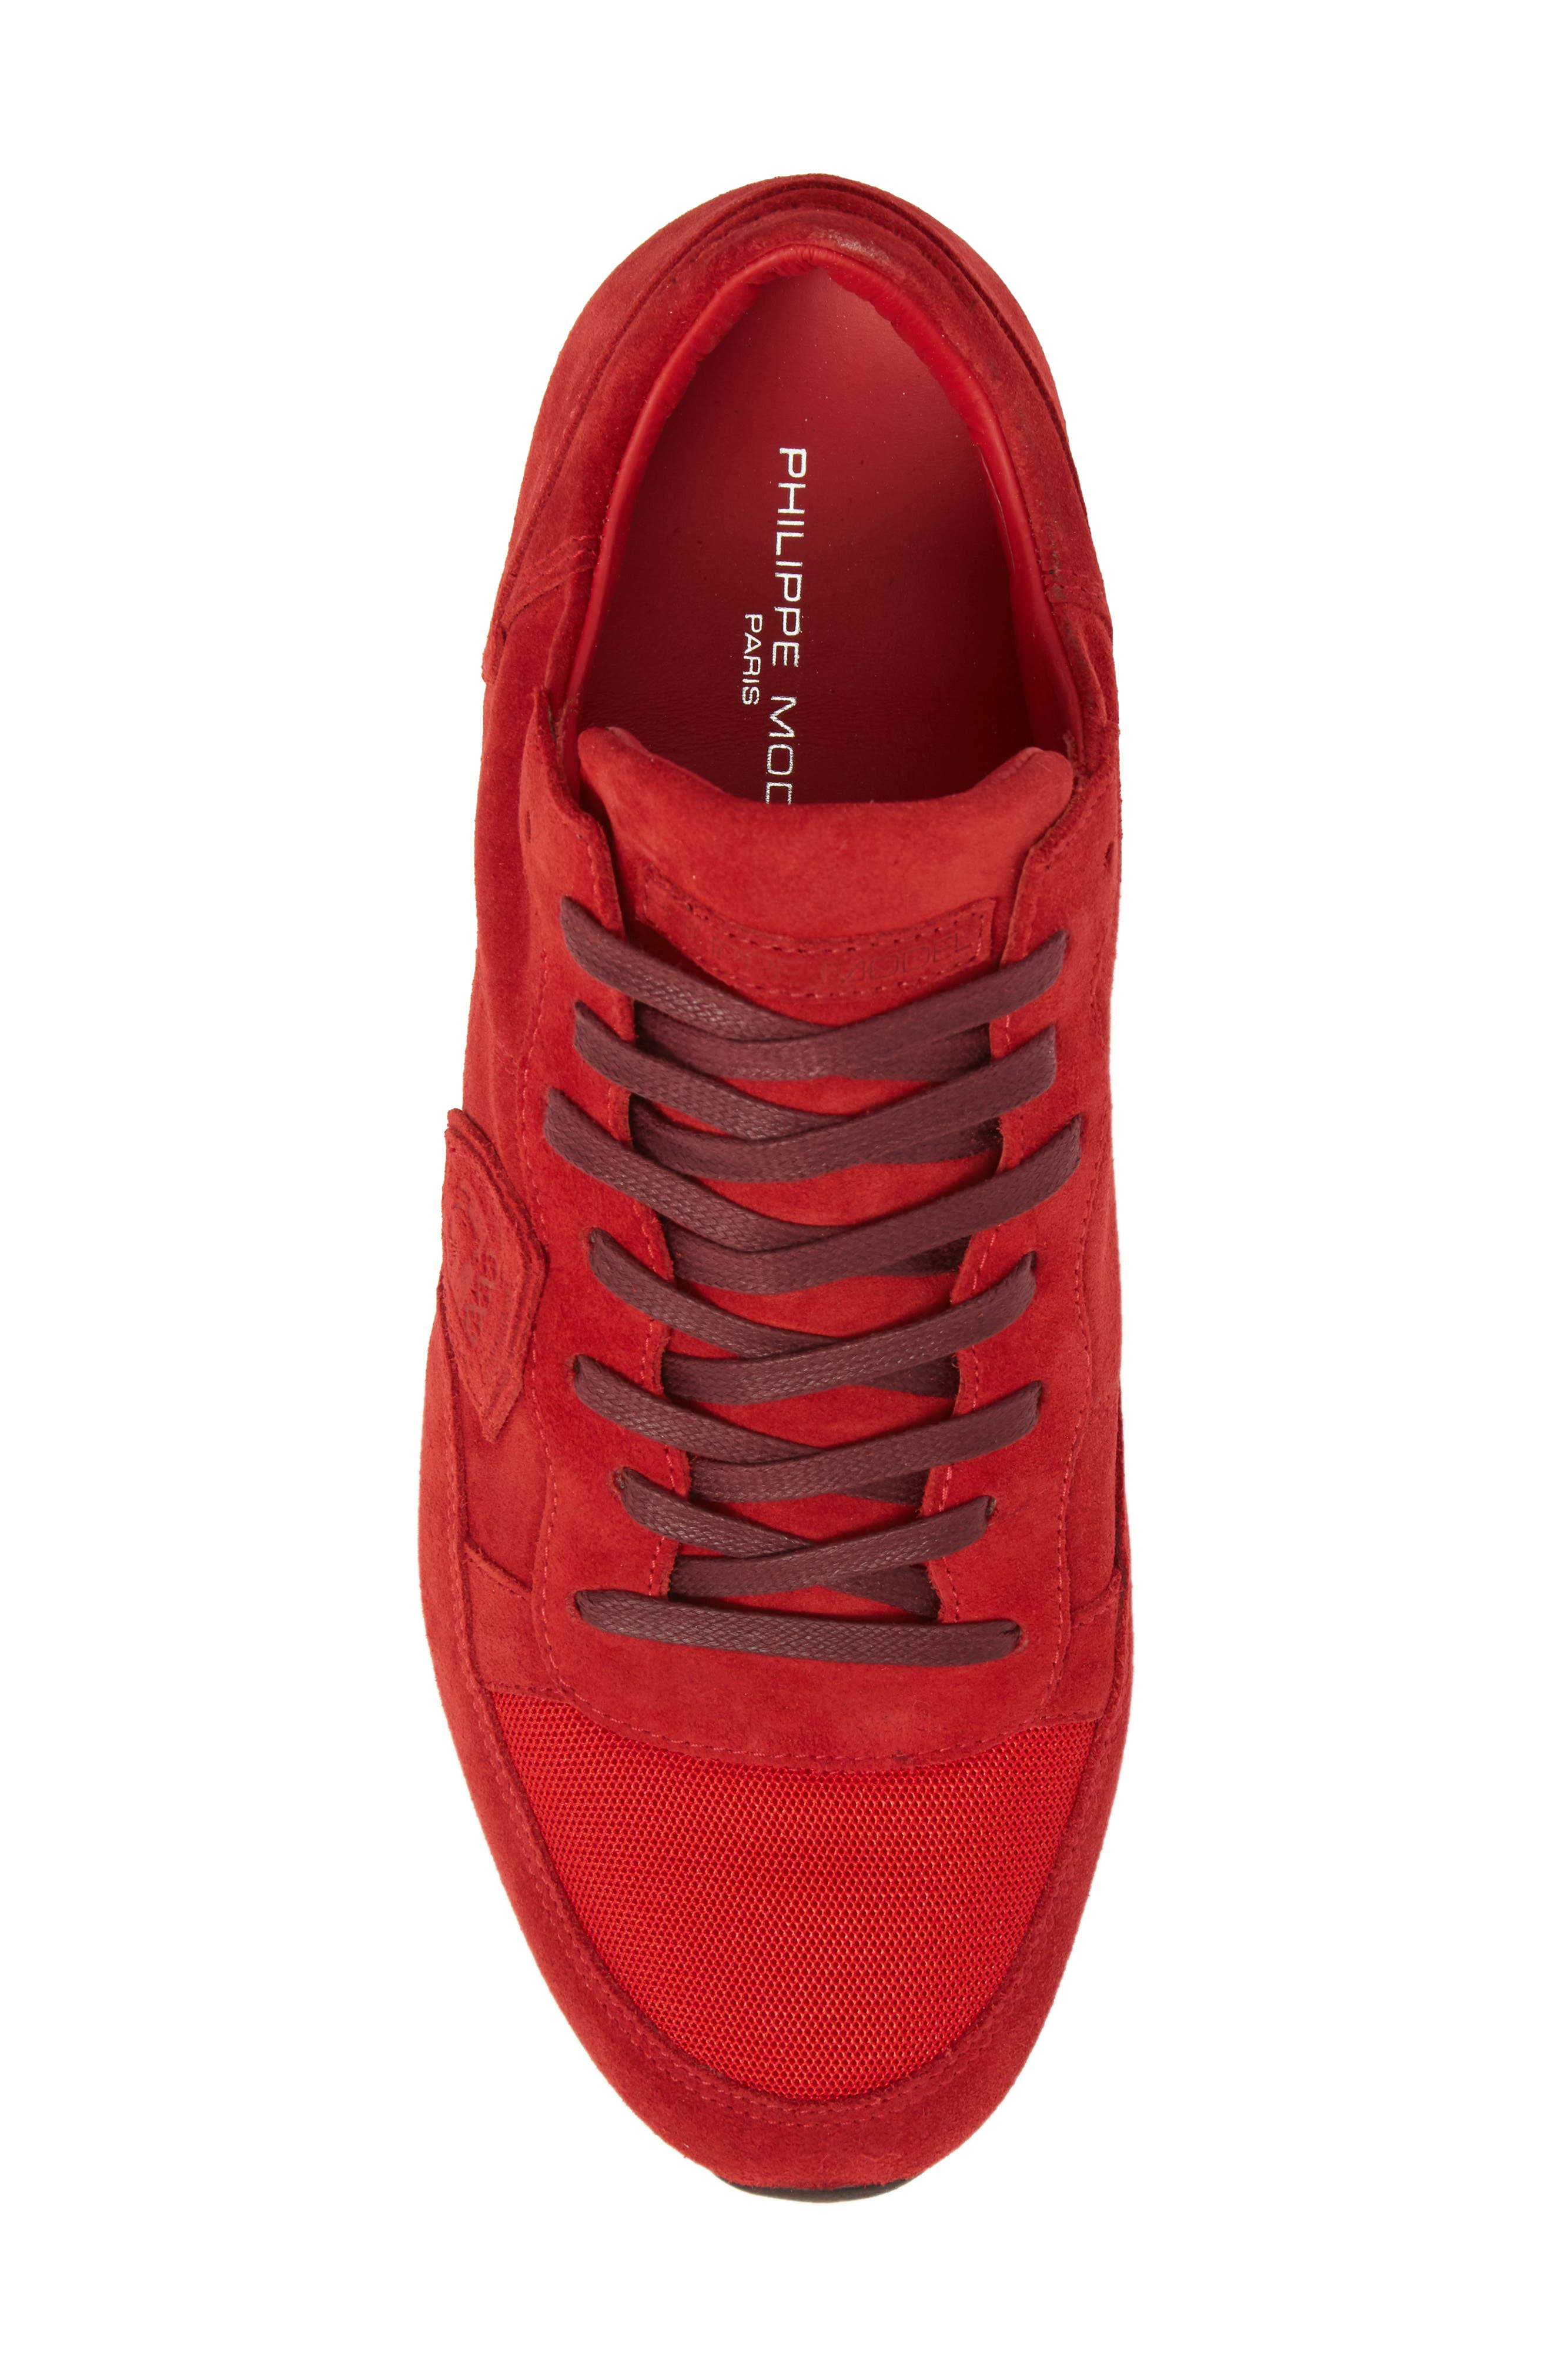 Tropez Low Top Sneaker,                             Alternate thumbnail 5, color,                             Red Suede